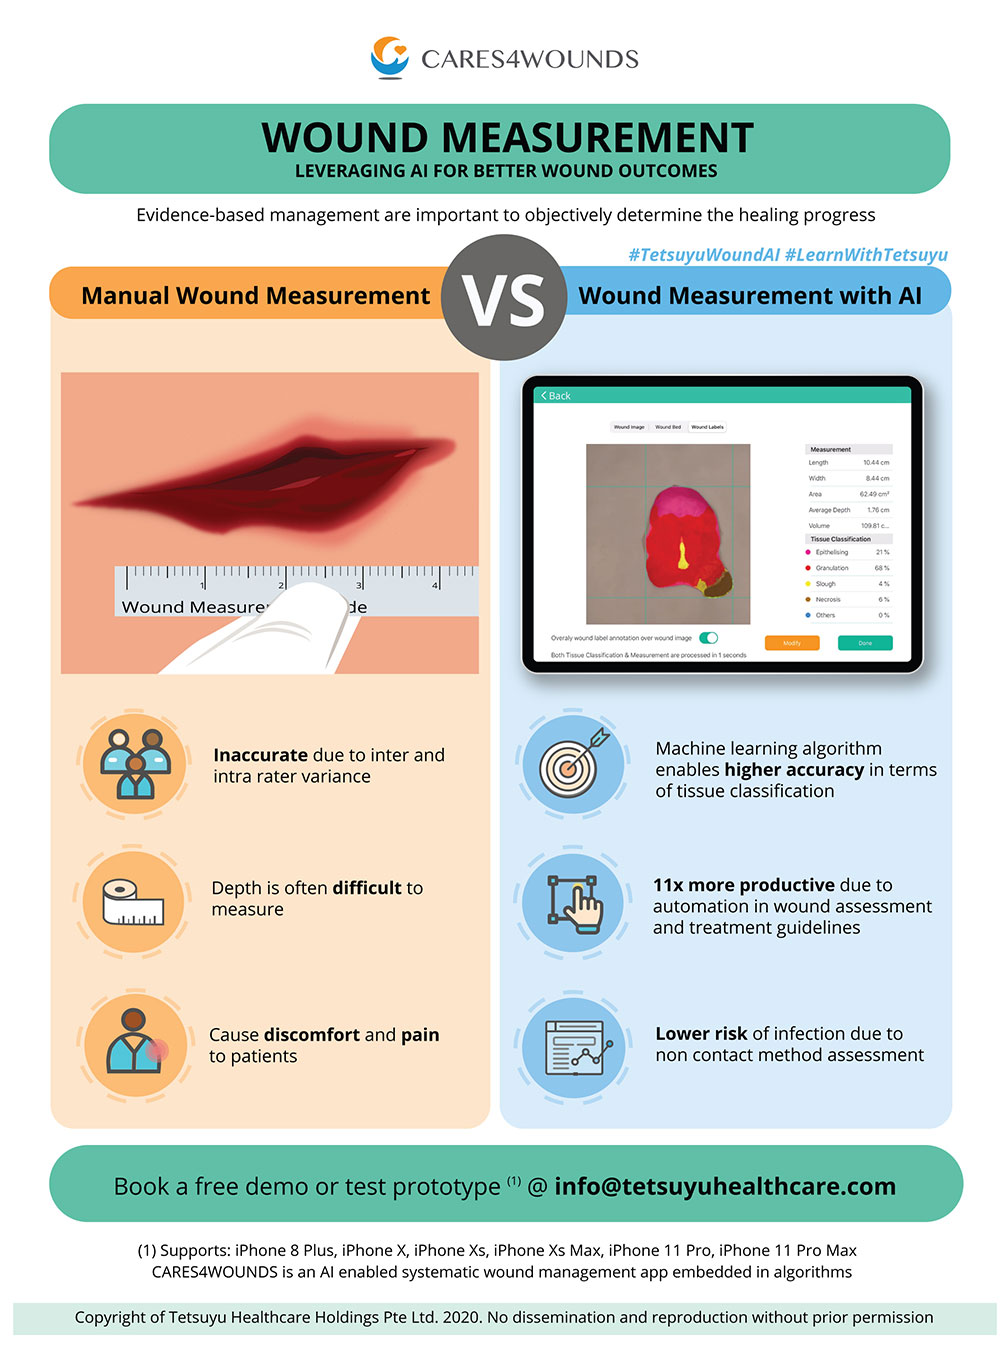 Manual Wound Measurements VS Wound Measurements With AI